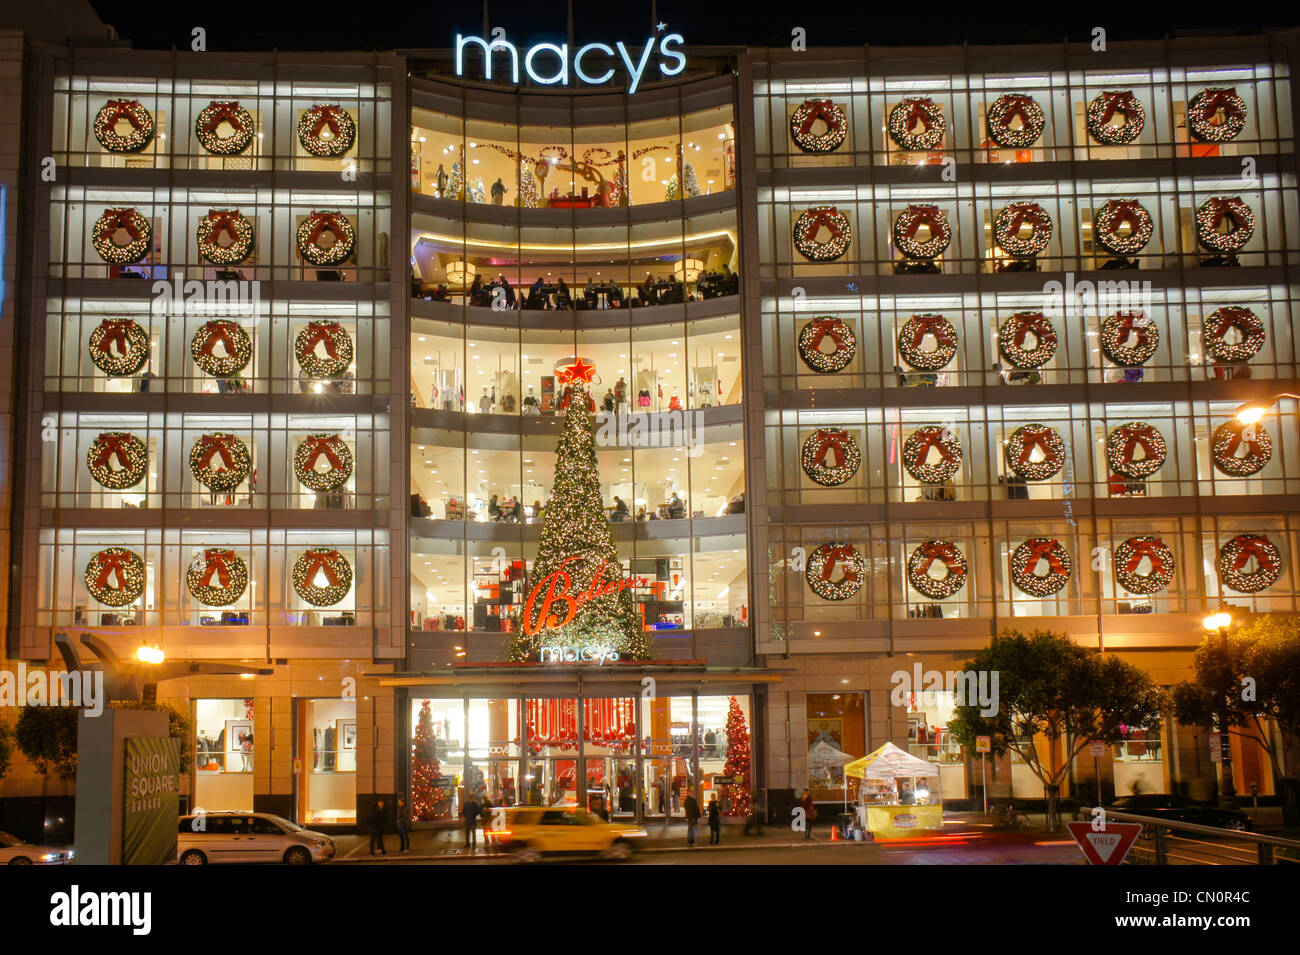 macys department store christmas decorations san francisco california usa